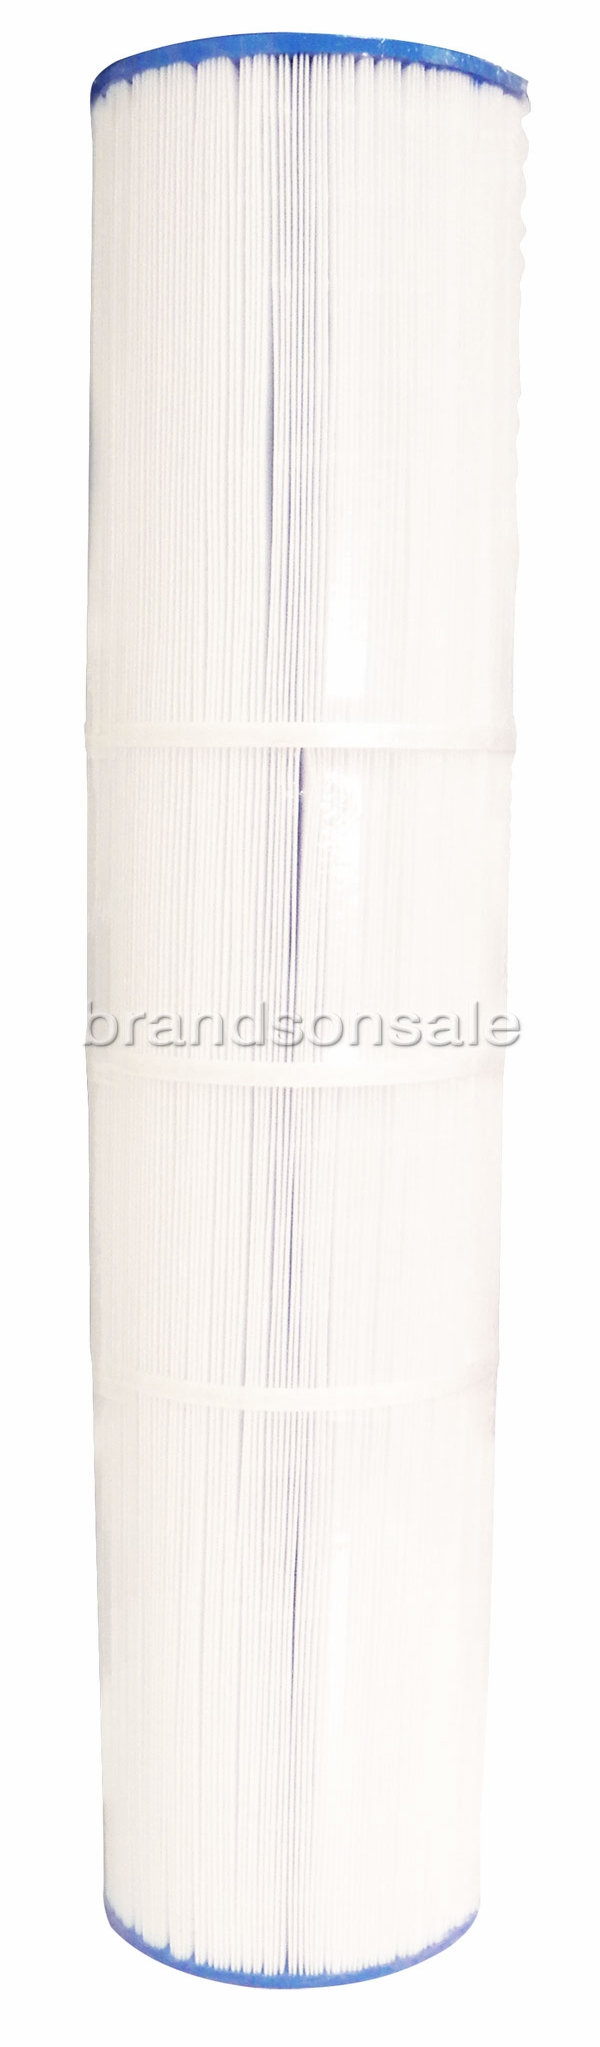 Rainbow Dynamic 100 Pool Filter Cartridge C-4999